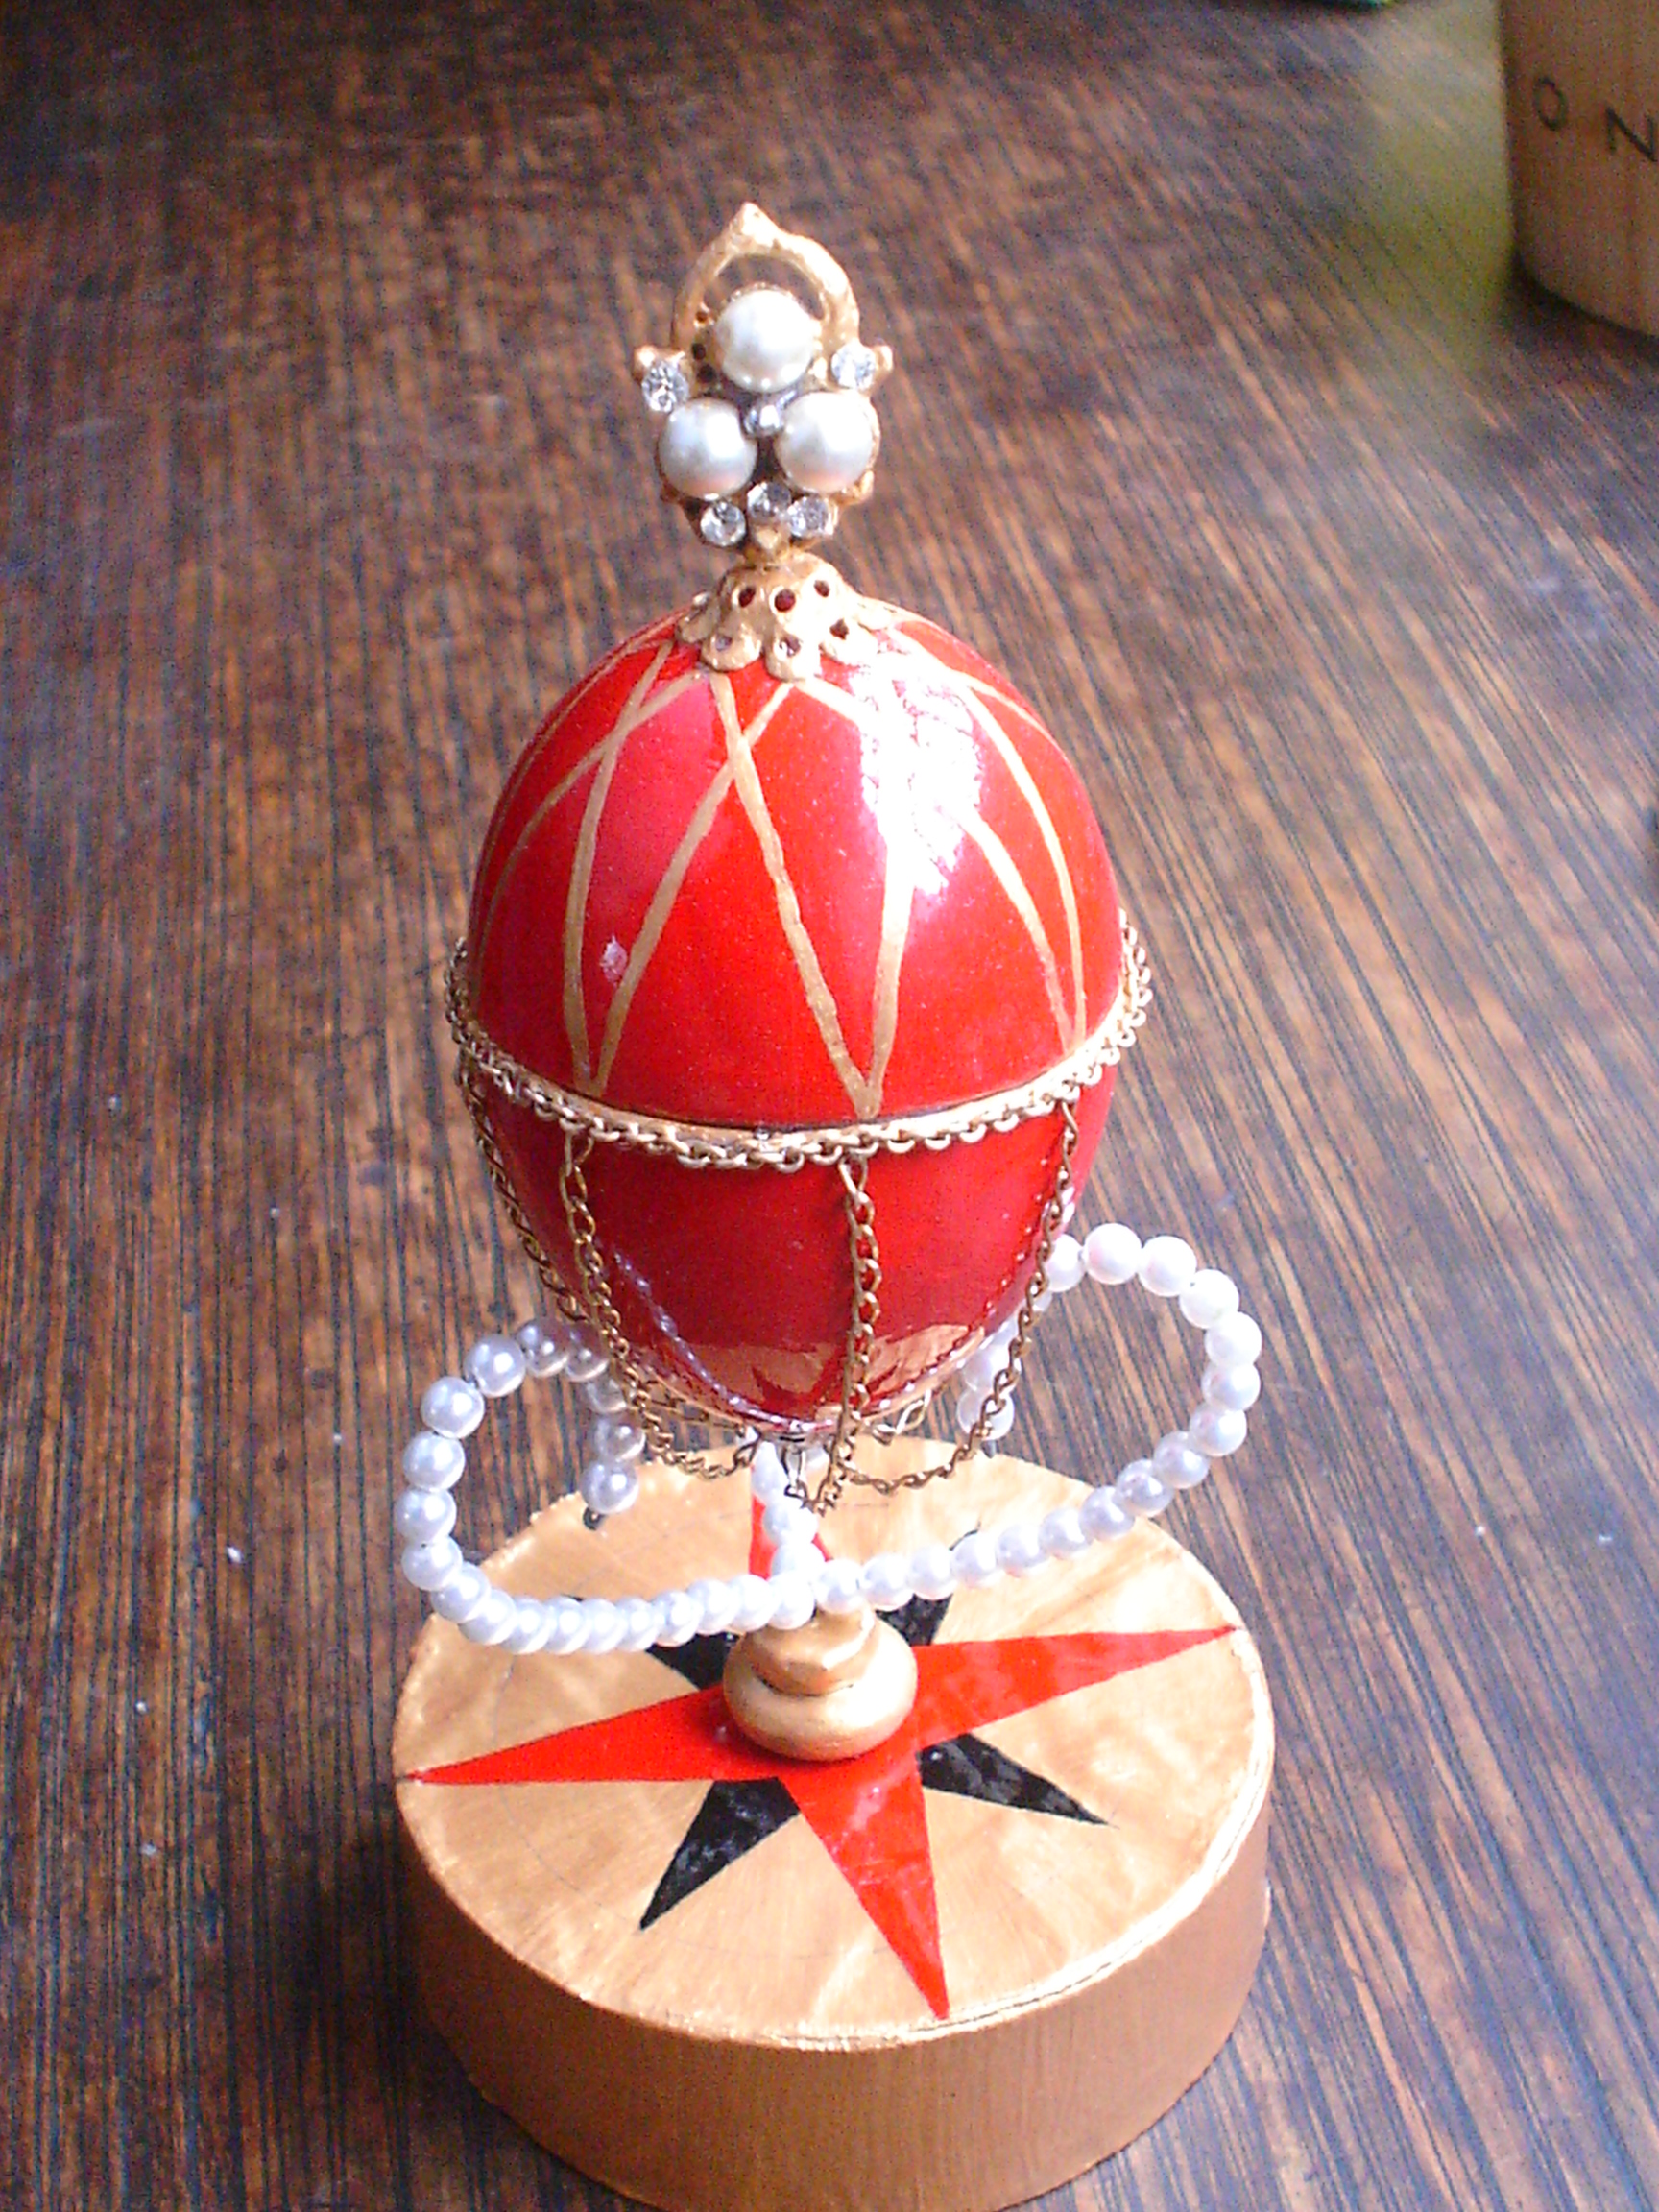 World-in-an-egg: Make a Fabergé-style hen egg